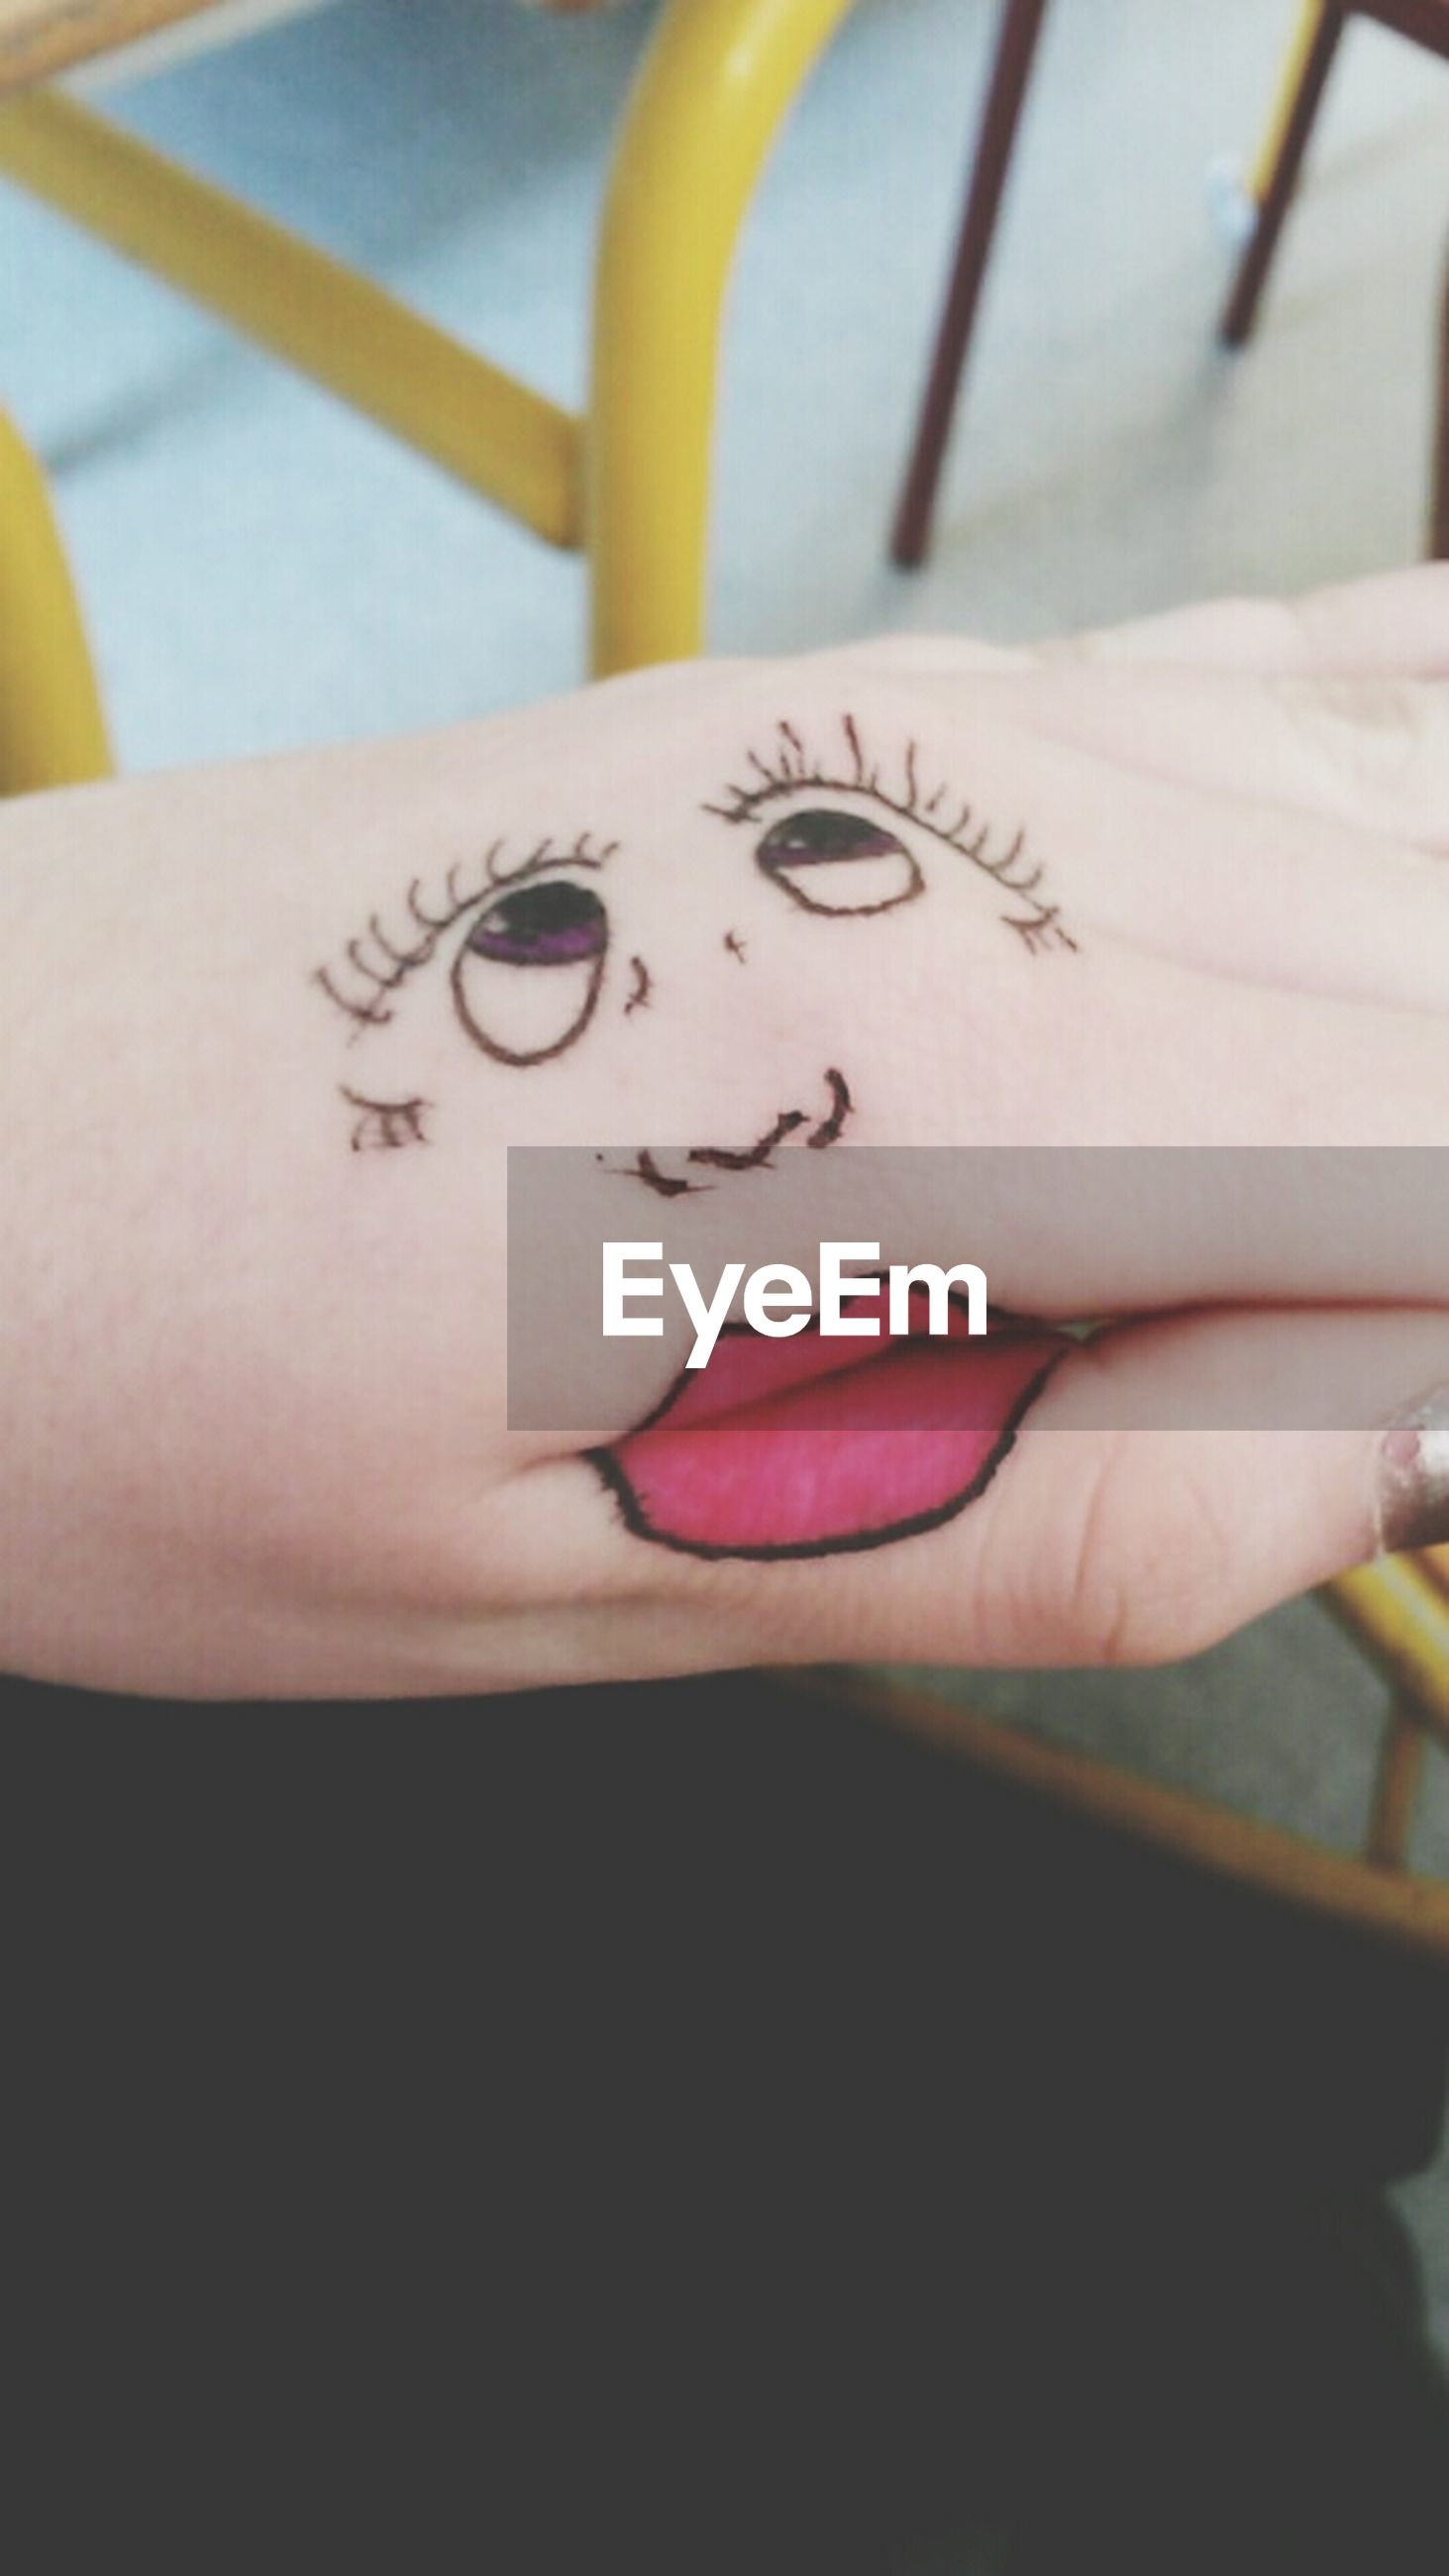 indoors, text, person, western script, close-up, communication, part of, human finger, paper, creativity, focus on foreground, lifestyles, art, cropped, holding, art and craft, tattoo